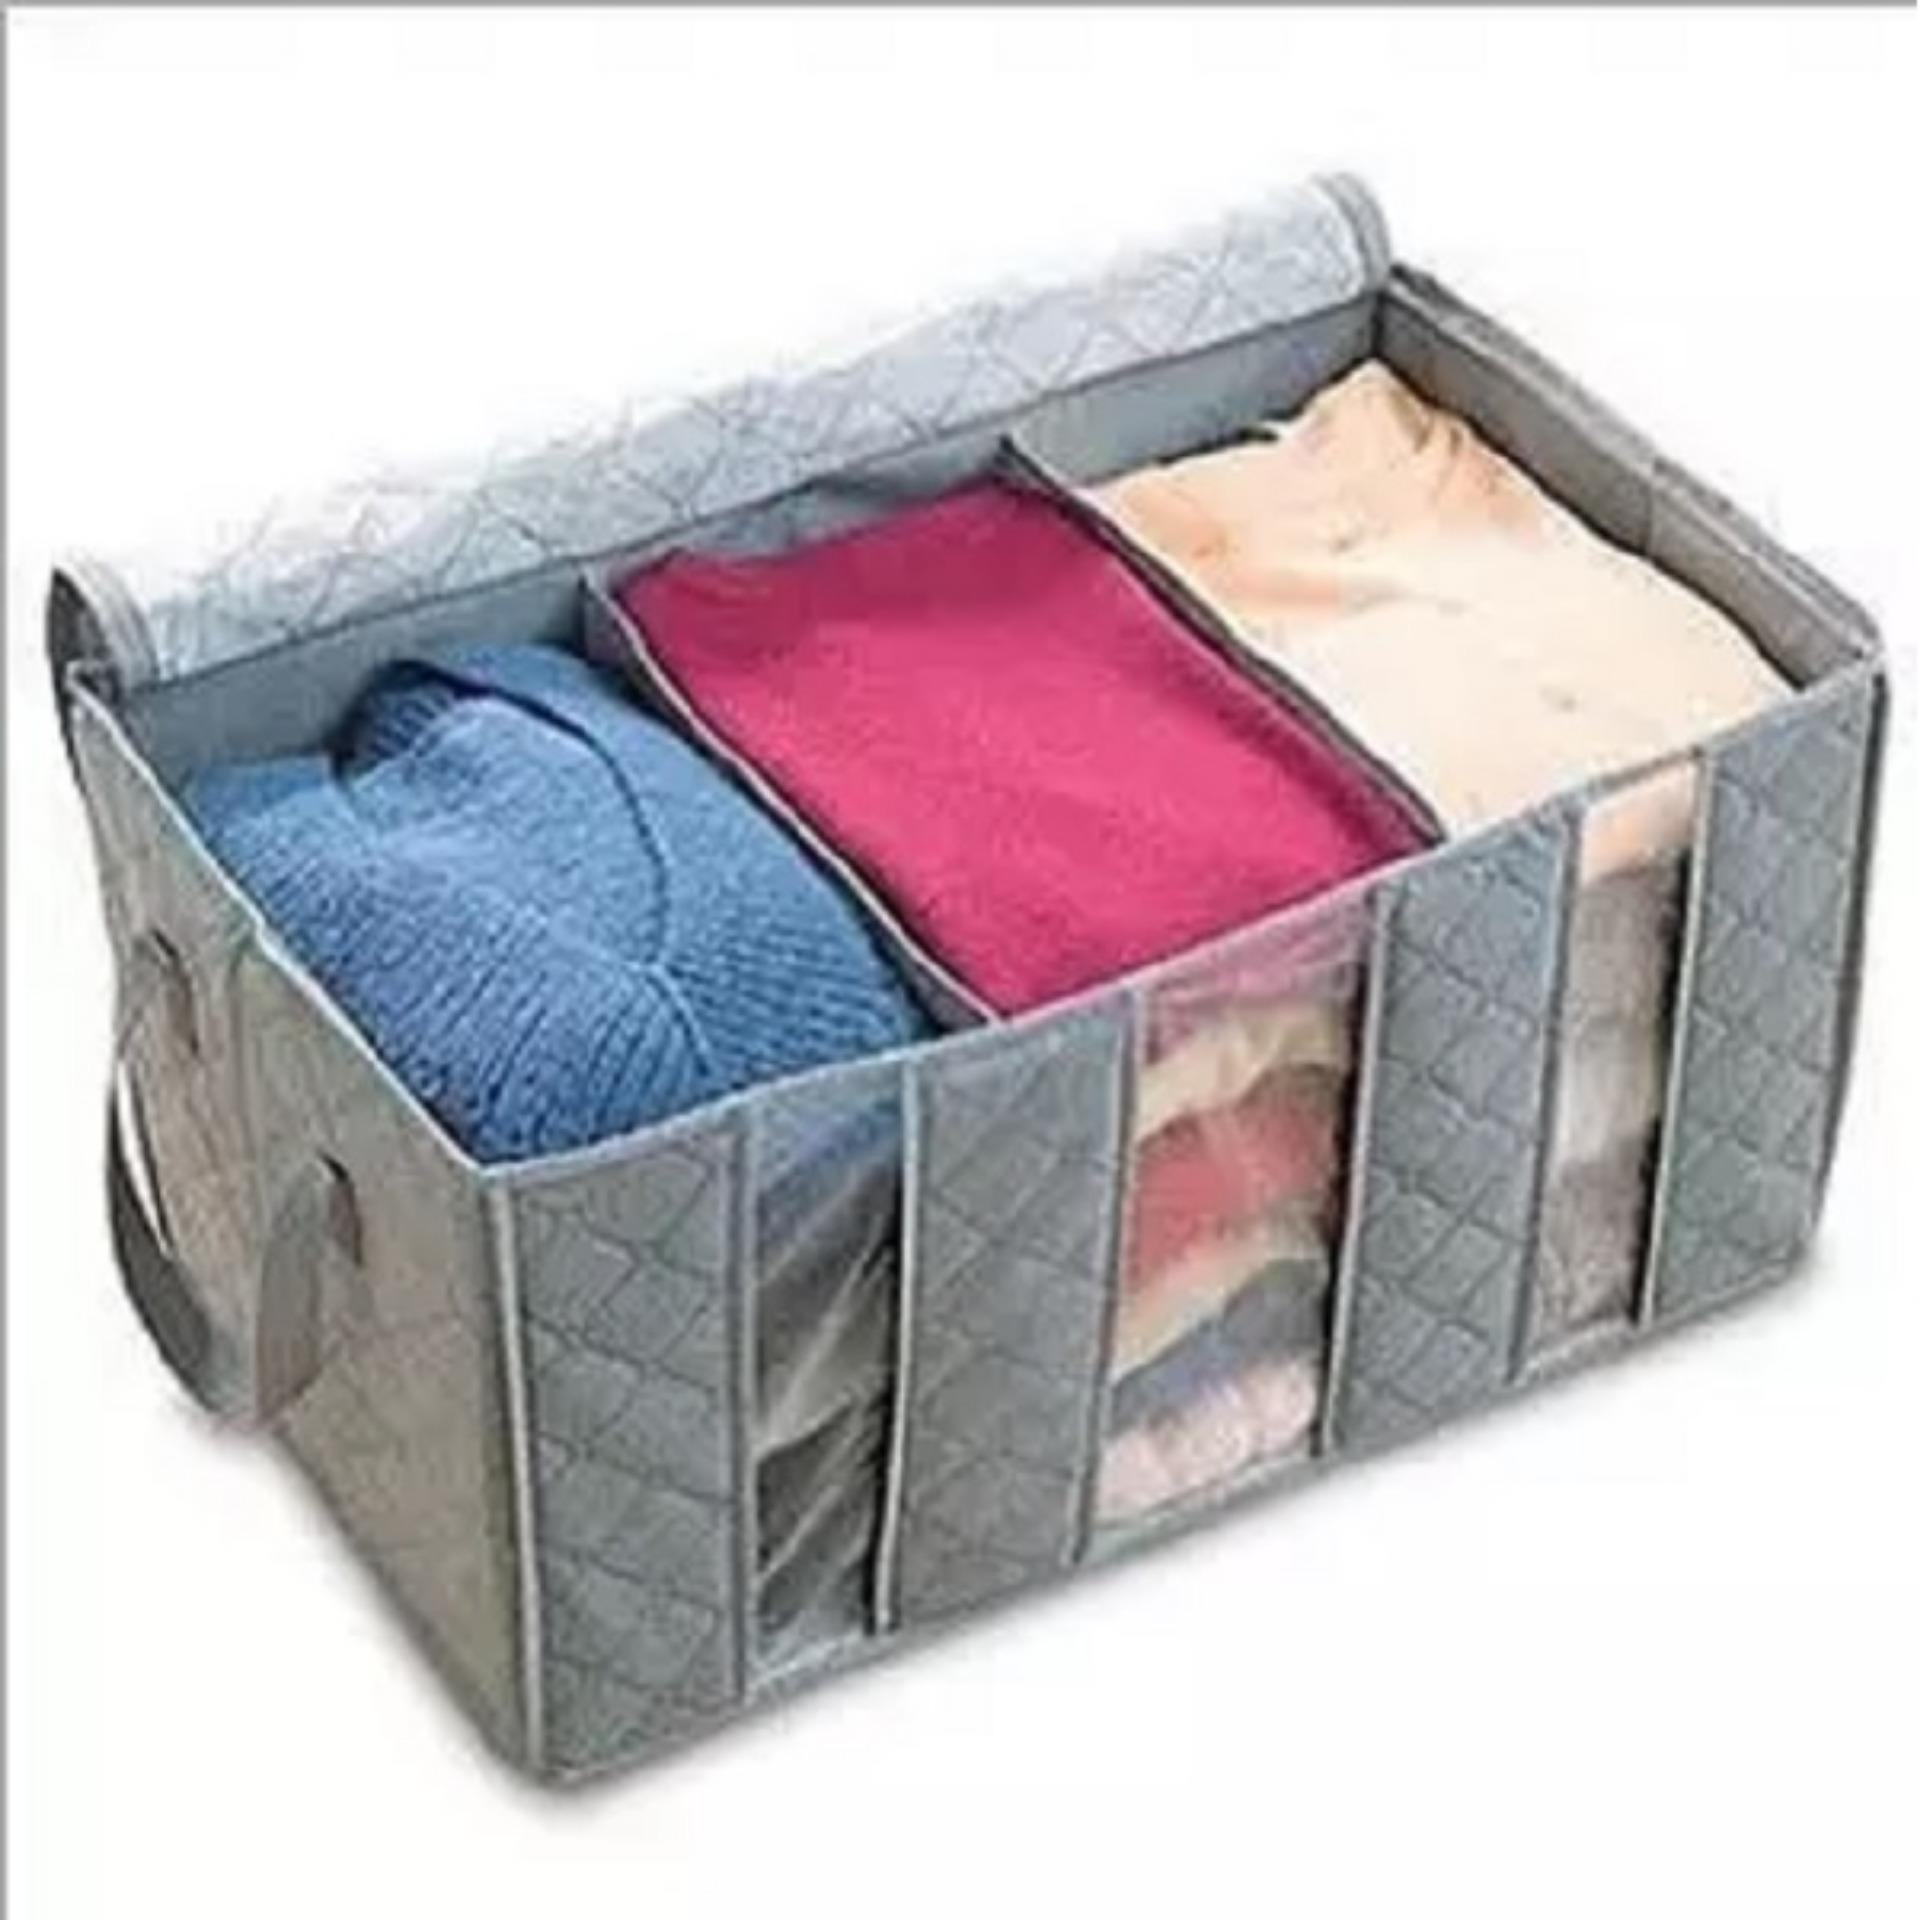 HPR002 Tempat Baju Fiber Storage Box Bamboo Charcoal Anti Bacterial -abu abu